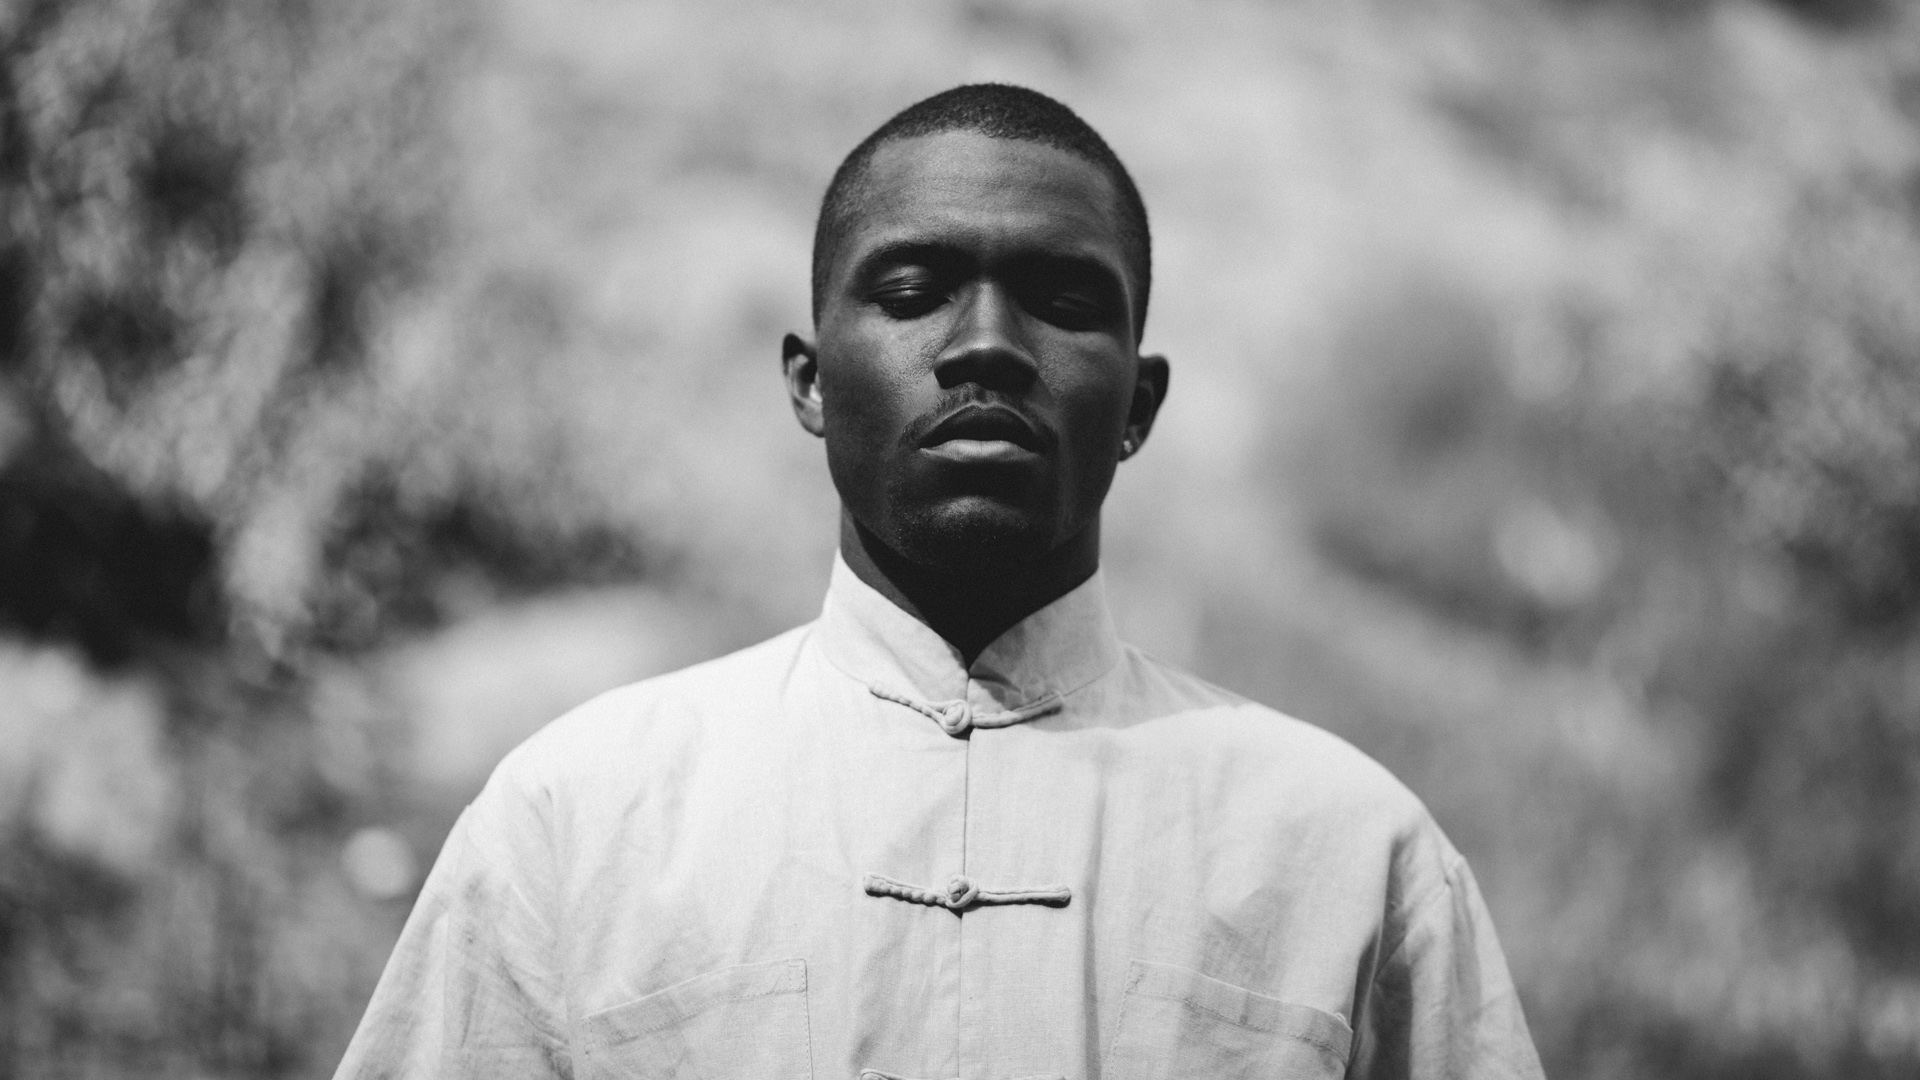 Frank Ocean Returns With New Visual Album, 'Endless'